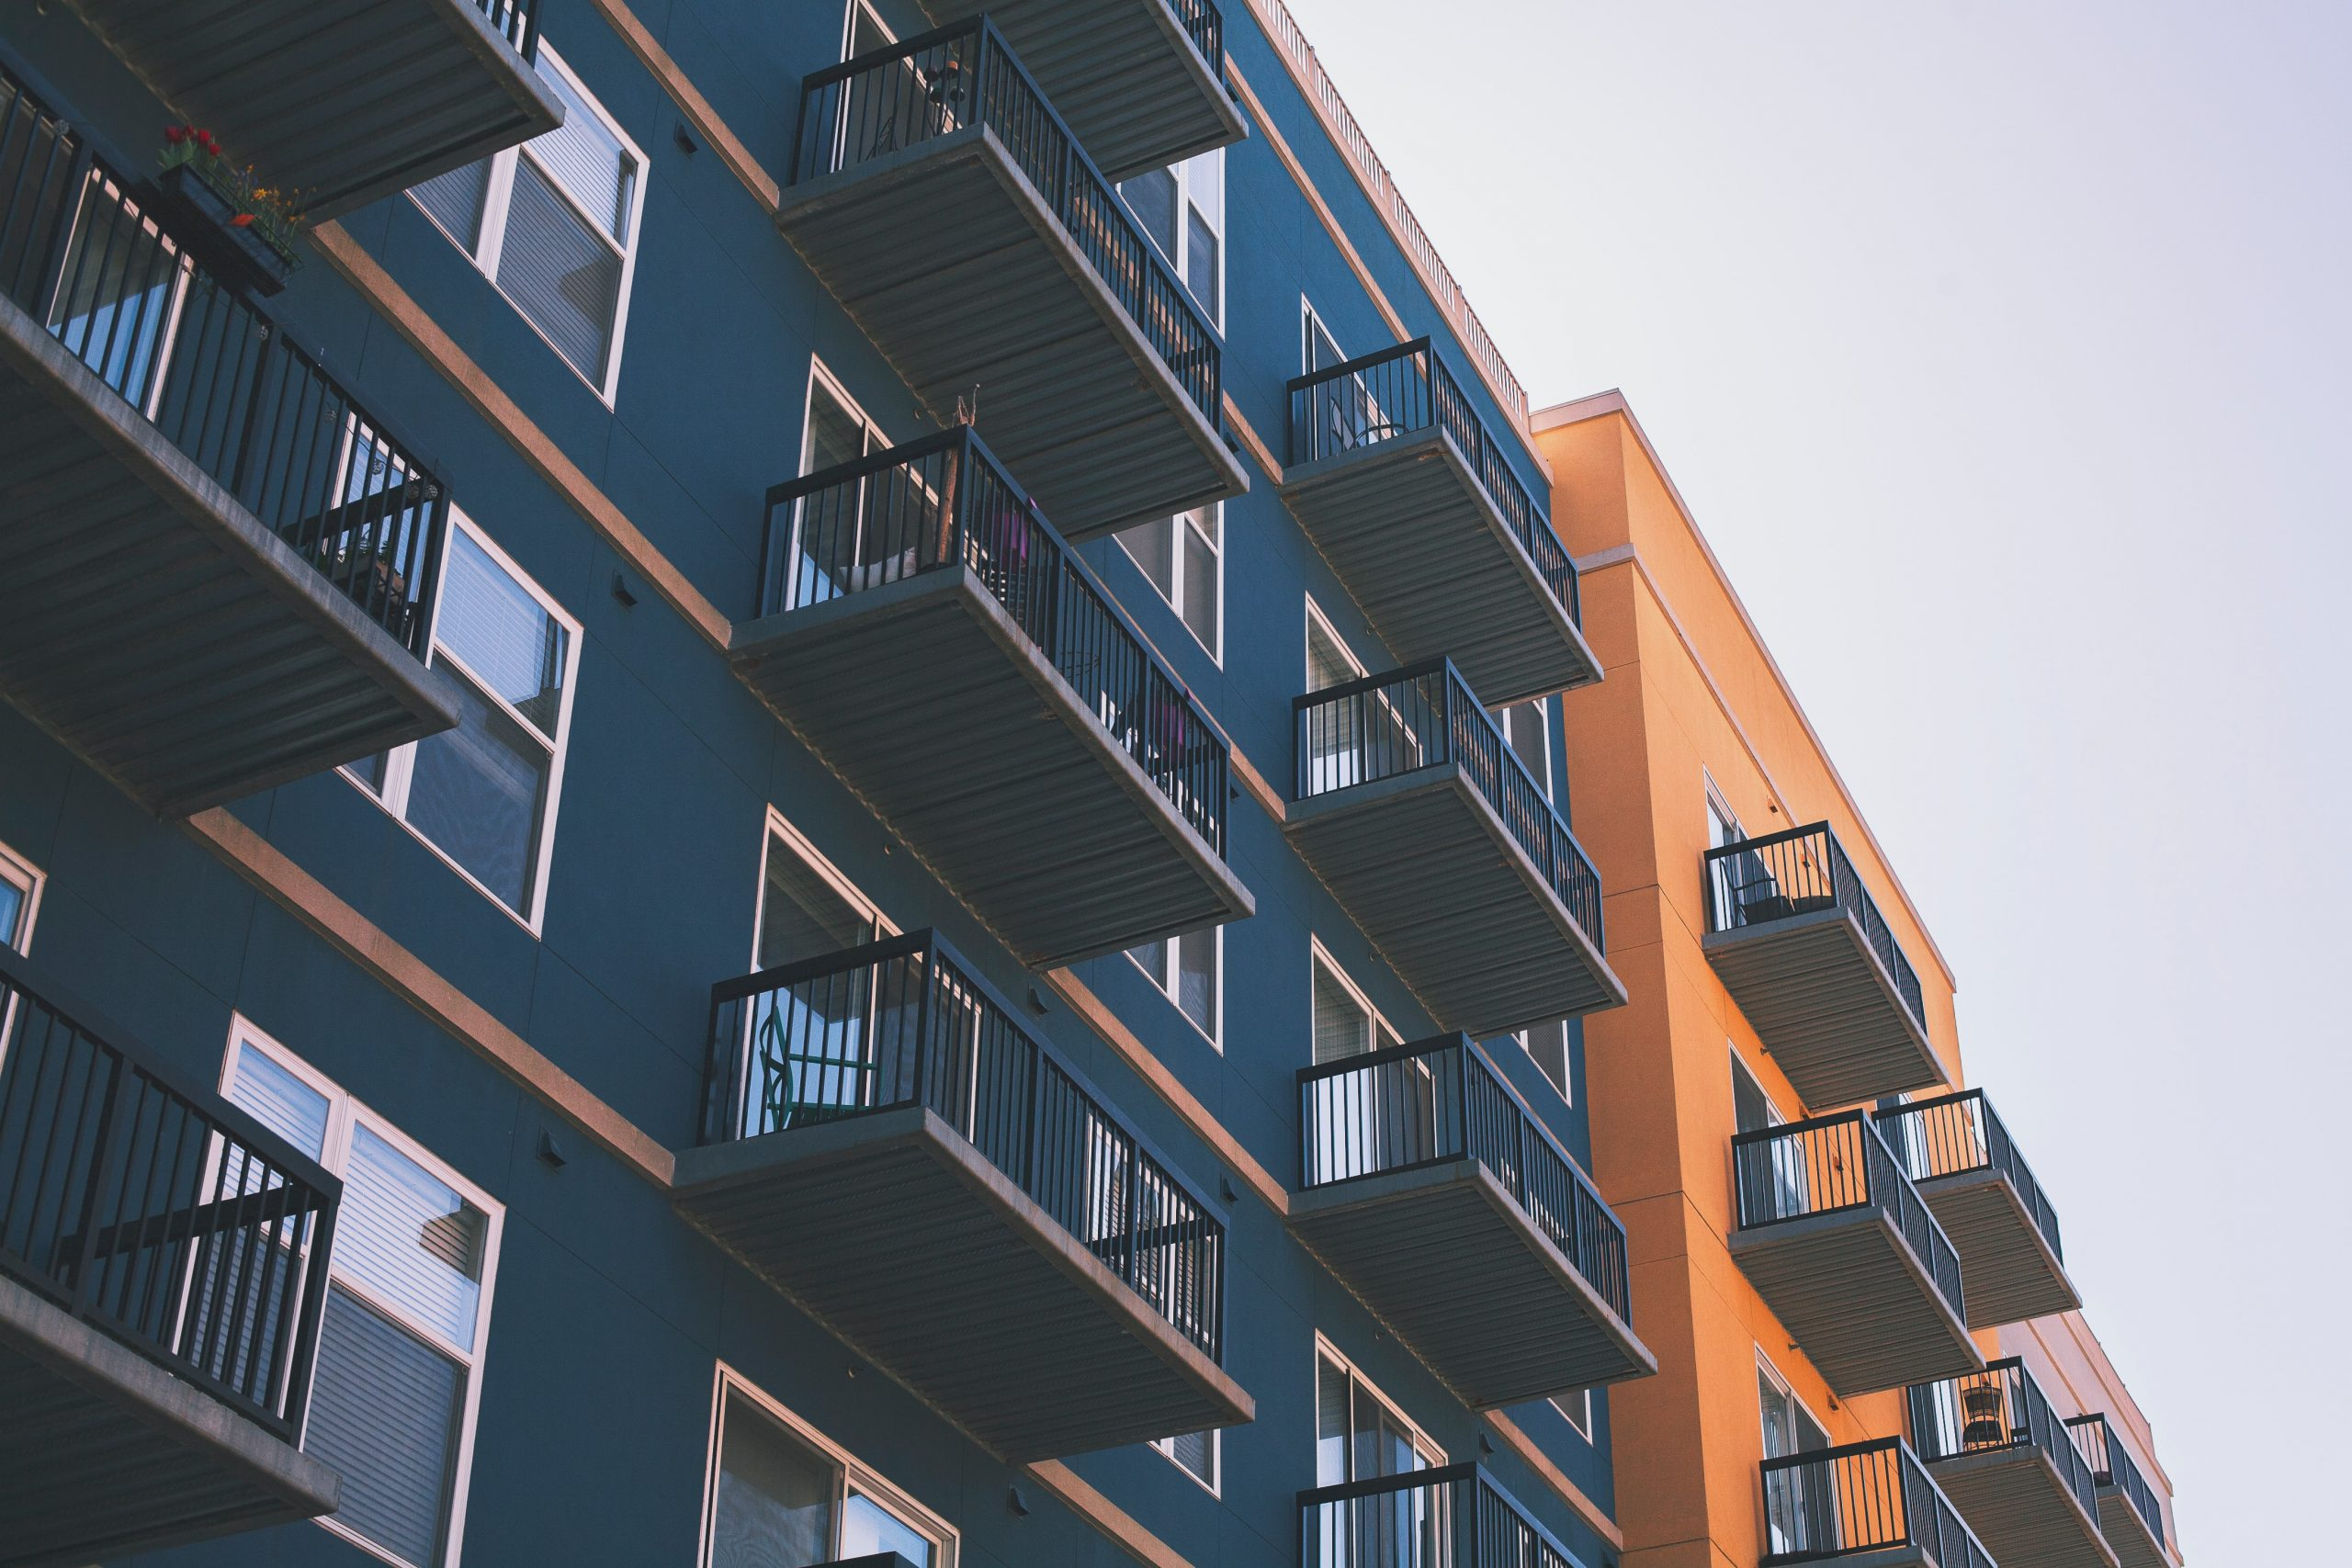 Side of a building with balconies